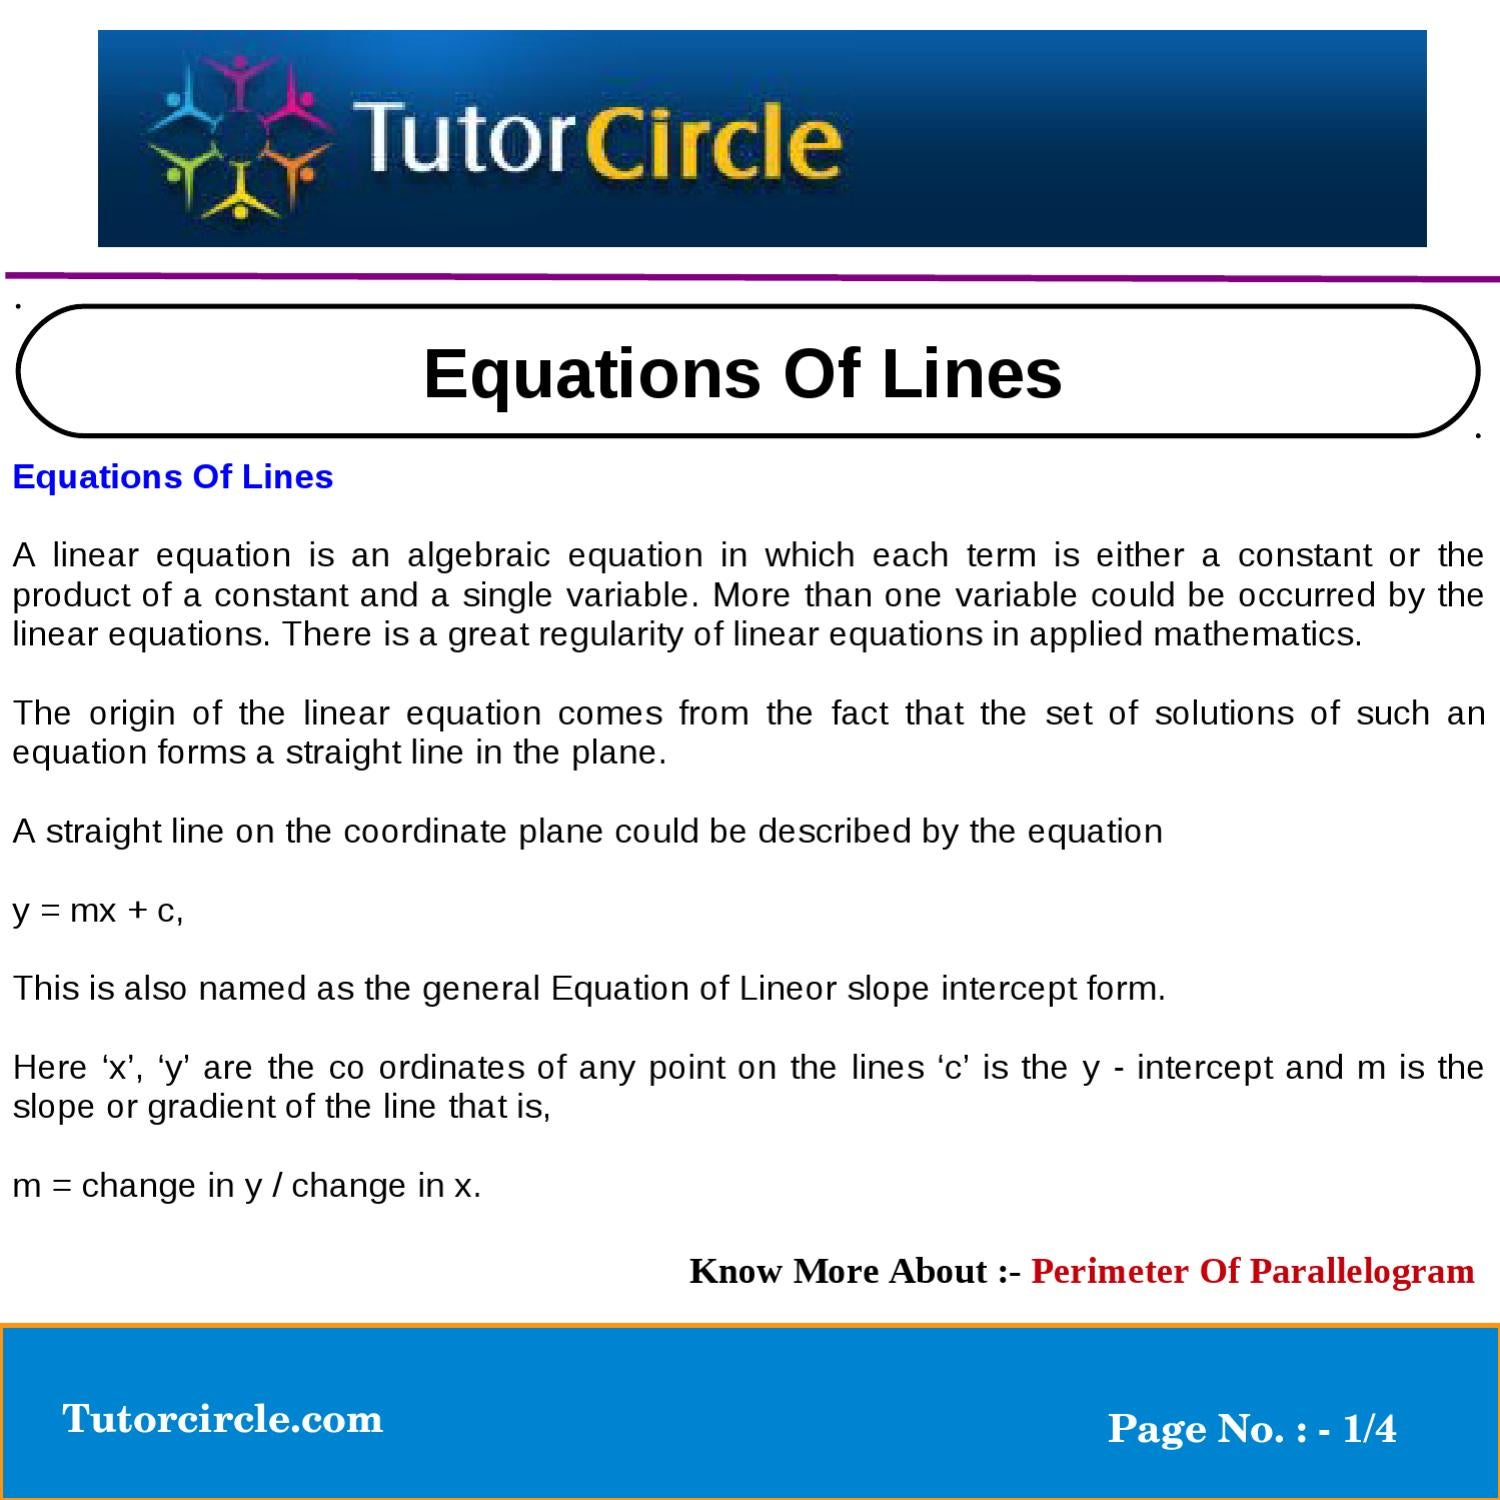 slope intercept form vs general form  Equations Of Lines by tutorcircle team - issuu